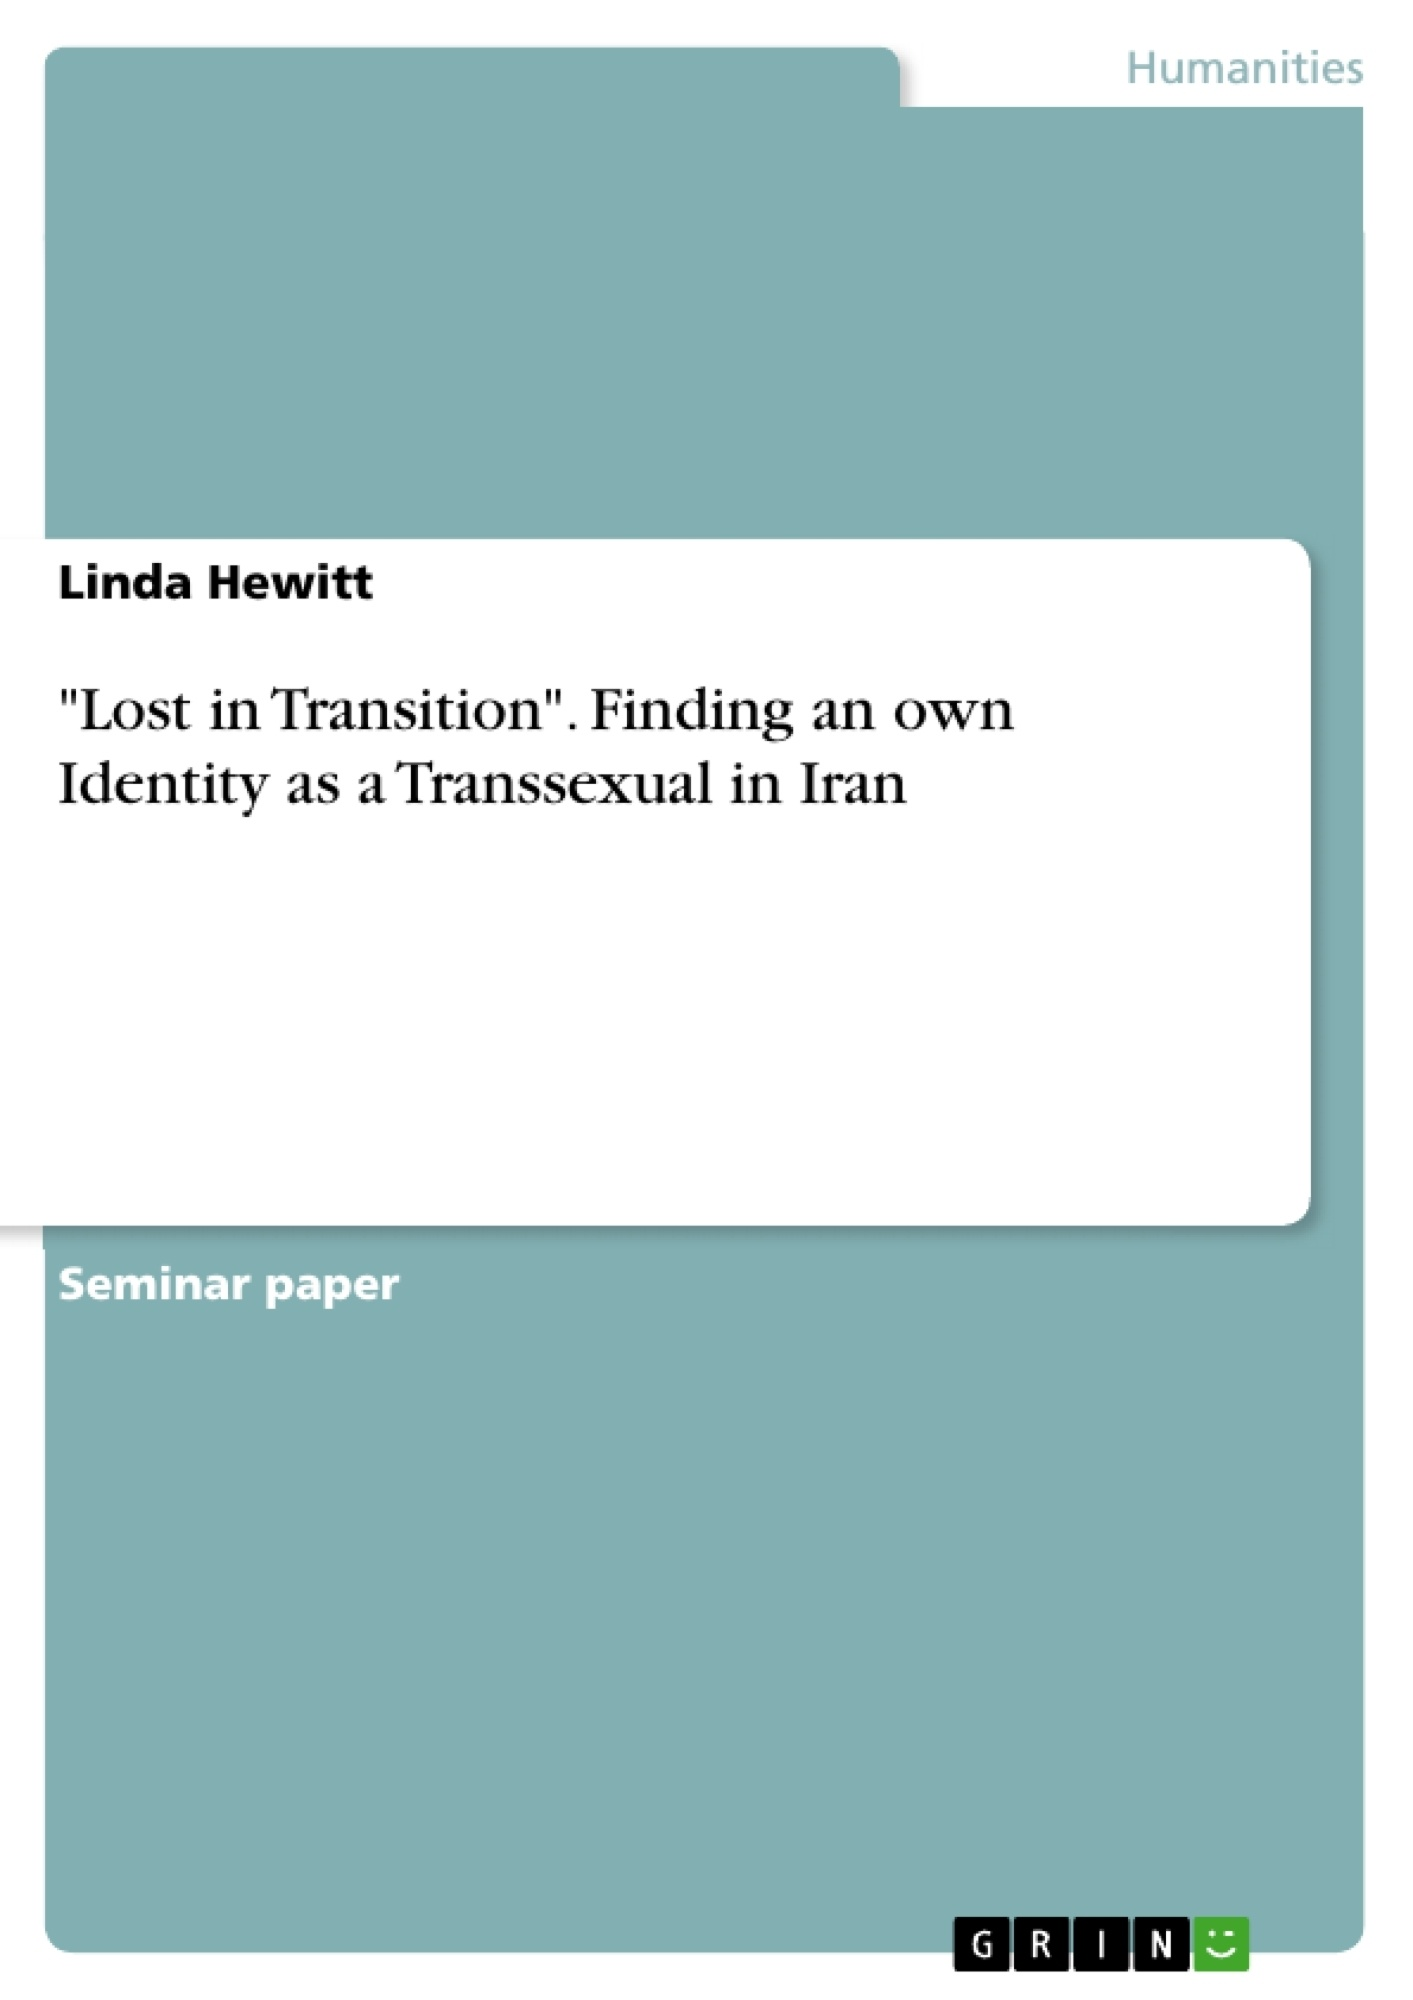 """Title: """"Lost in Transition"""". Finding an own Identity as a Transsexual in Iran"""